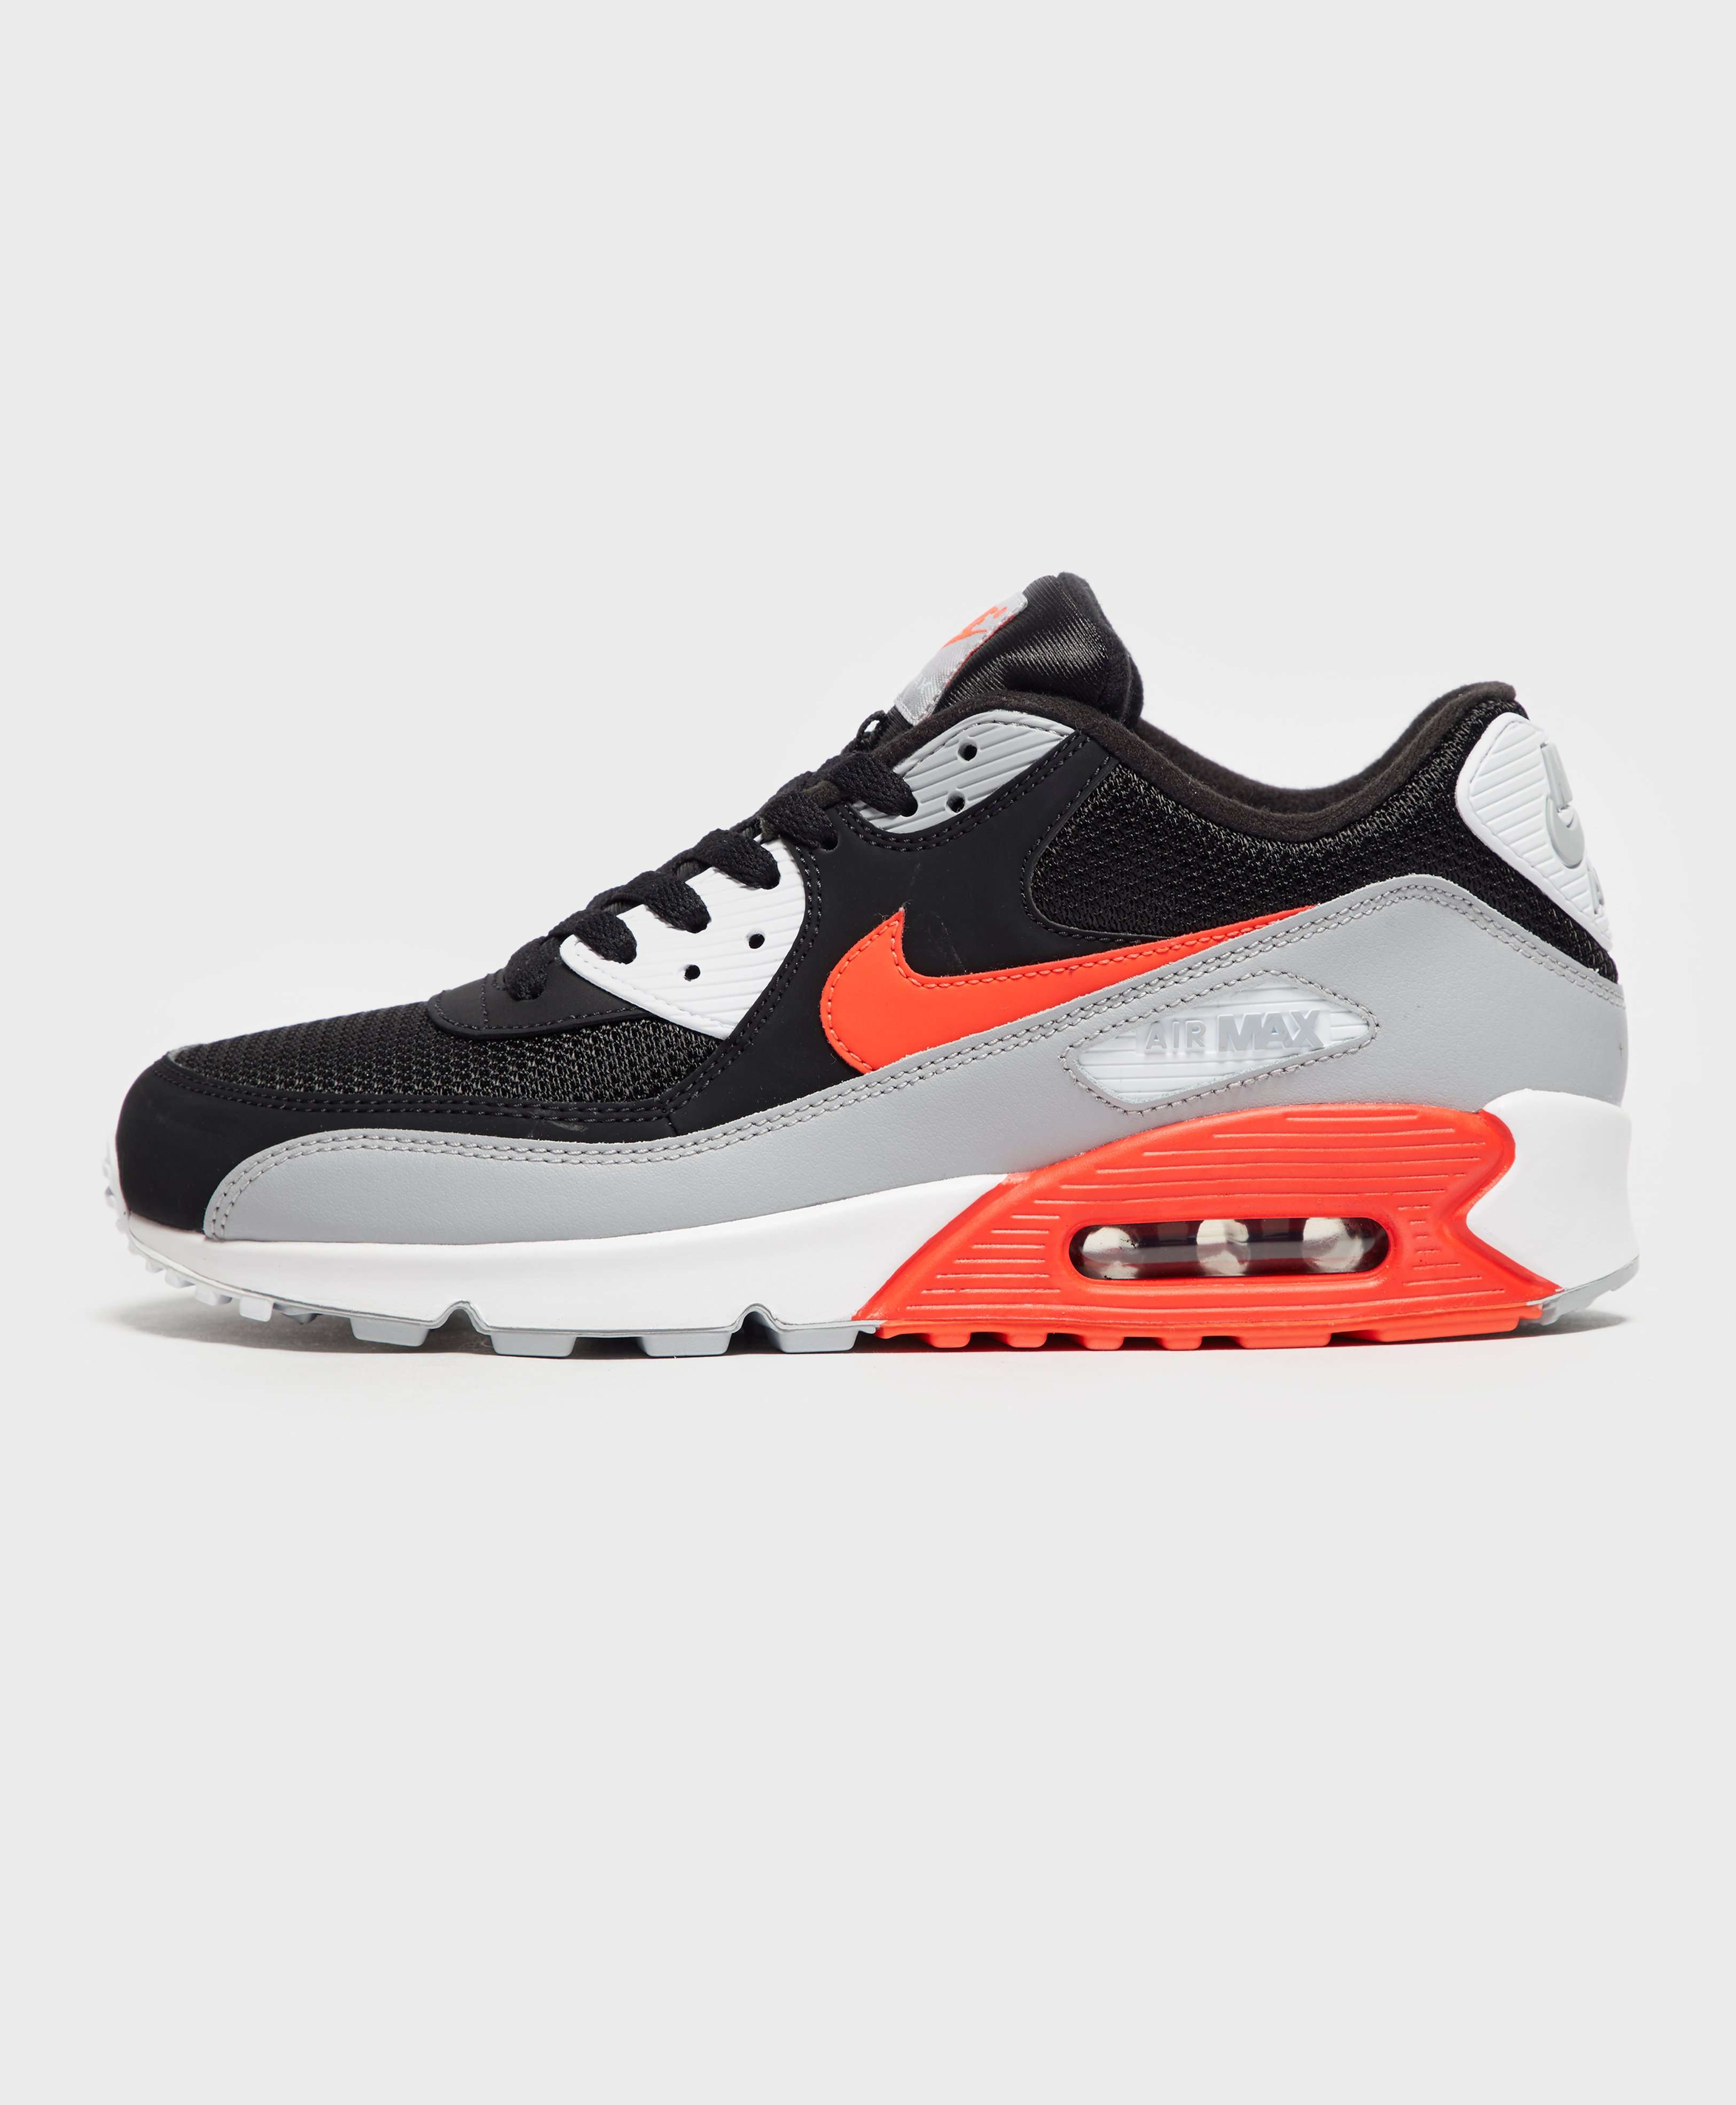 Nike Air Max 90 Essential OG